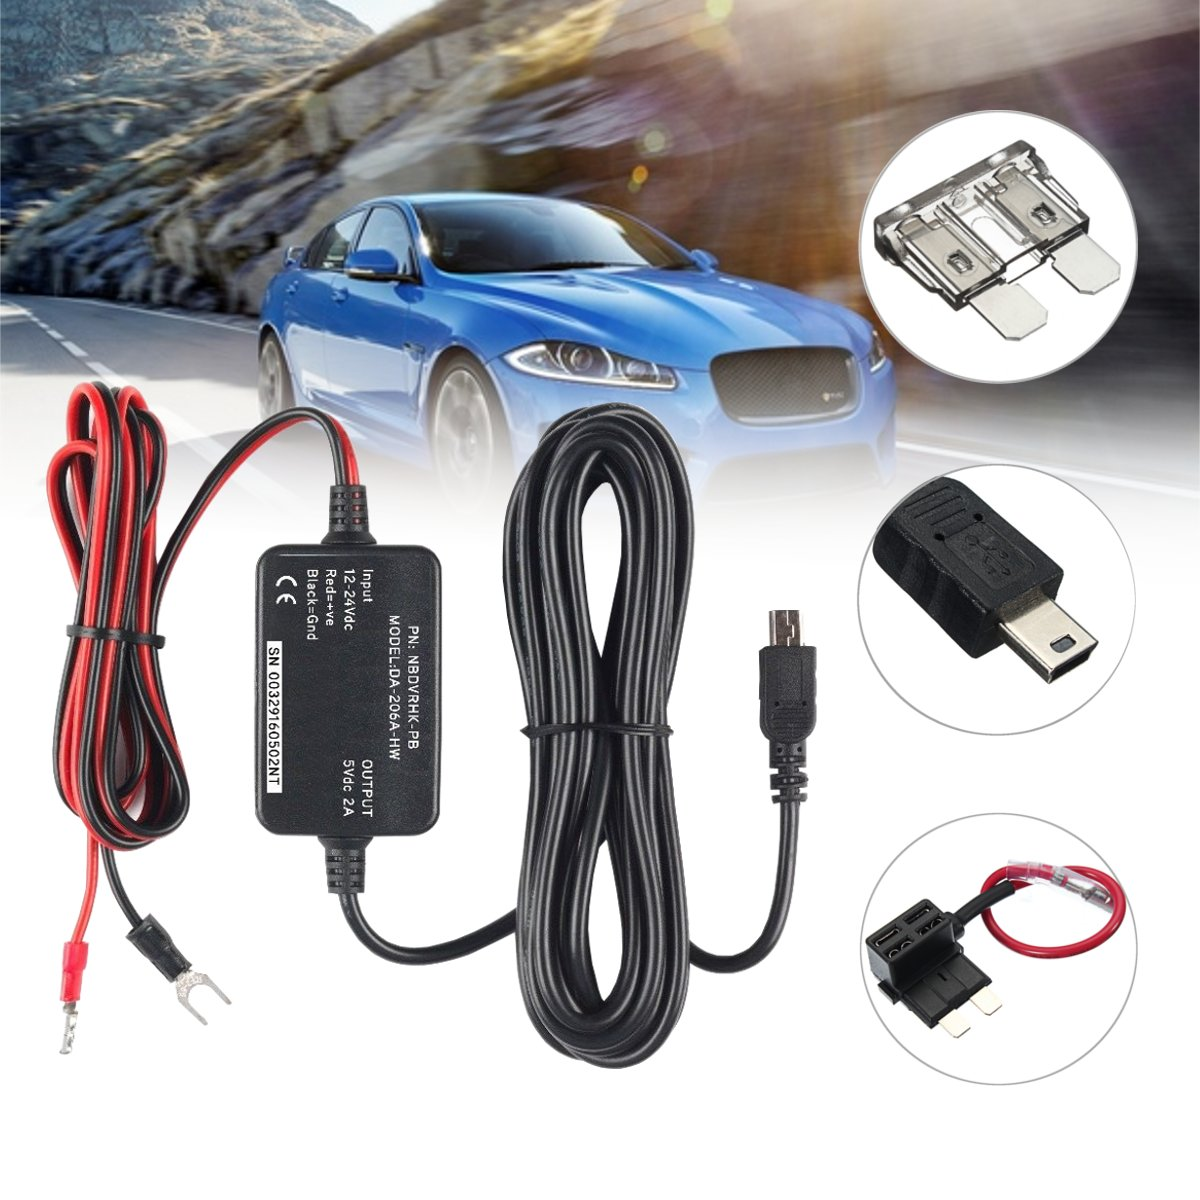 Car Hard Wire Kit Mini USB Hardwire for Dash Cam Camcorder Vehicle DVR